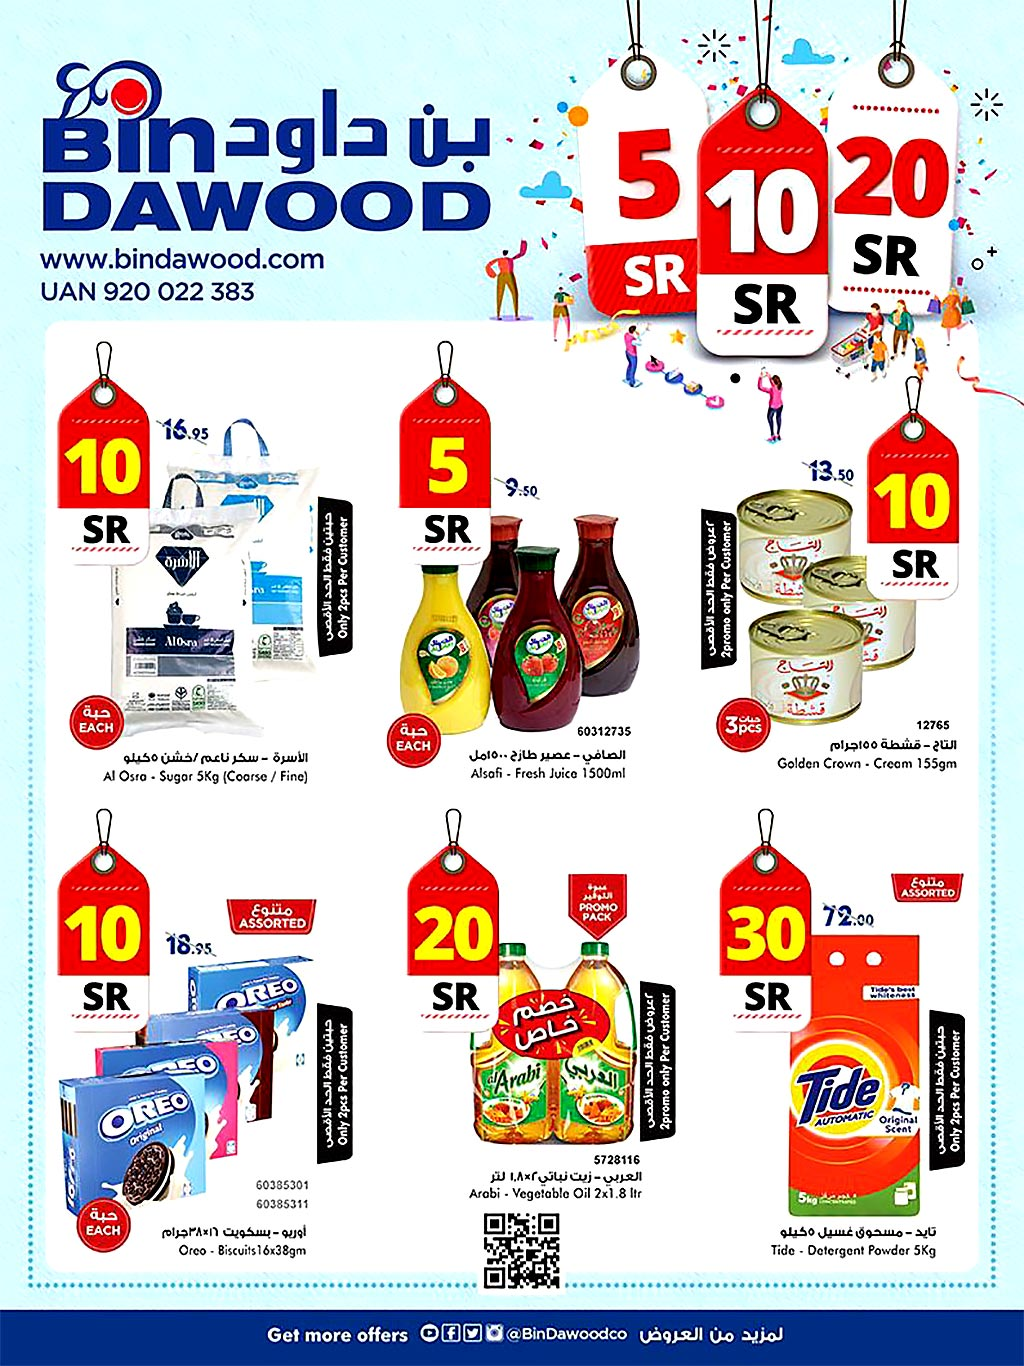 bindawood offers from 9oct to 15oct 2019 page number 1 عروض بـن داوود من 9 أكتوبر حتى 15 أكتوبر 2019 صفحة رقم 1